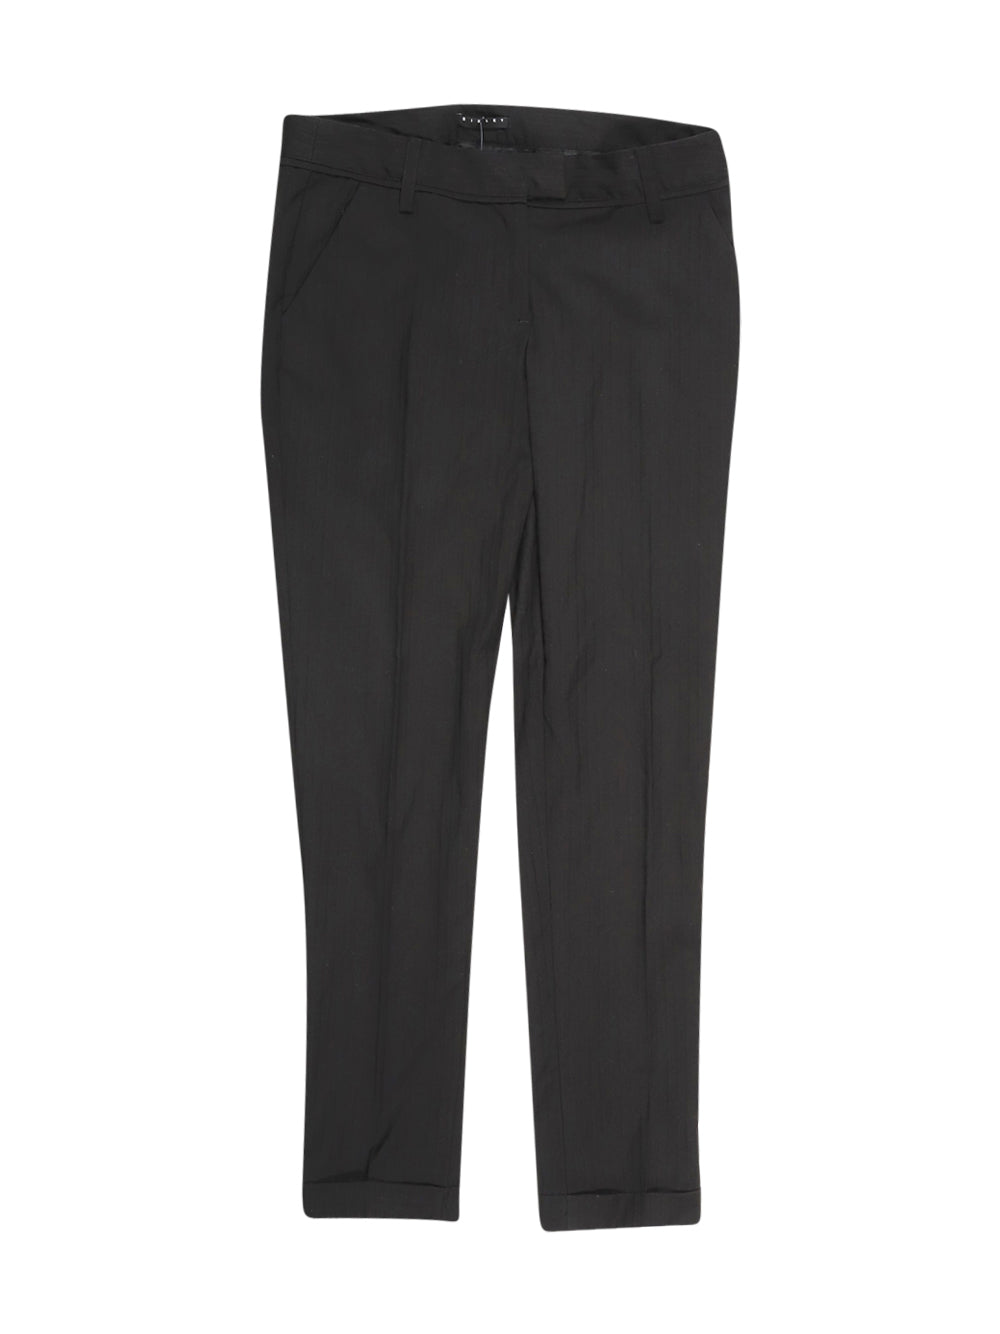 Front photo of Preloved Sisley Black Woman's trousers - size 8/S